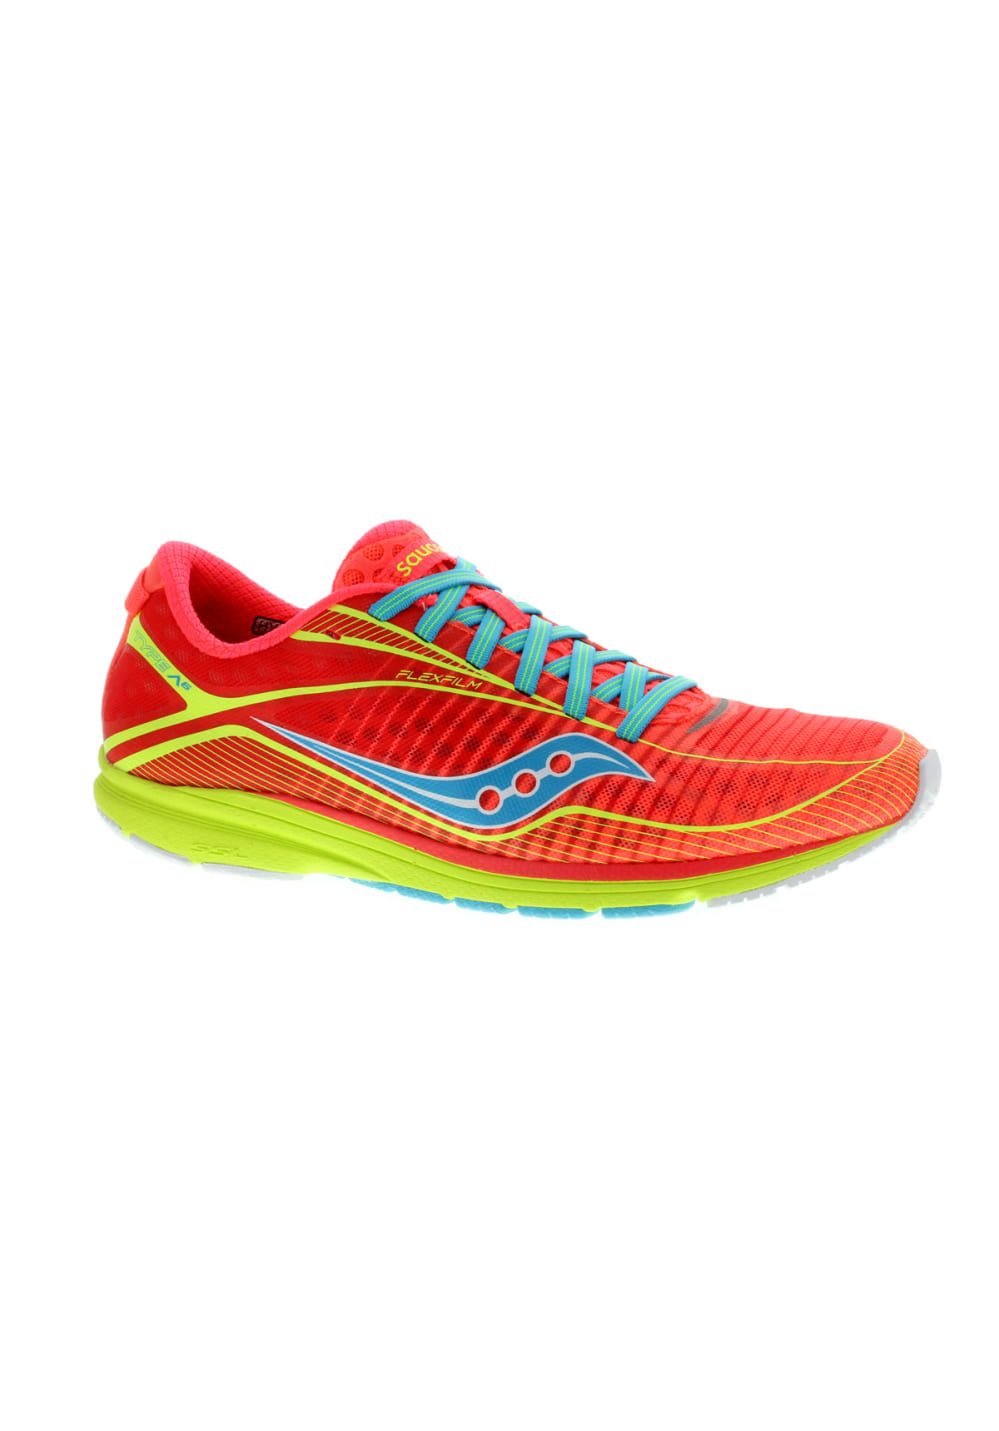 b1fe4615 Saucony Type A6 - Running shoes for Women - Red | 21RUN